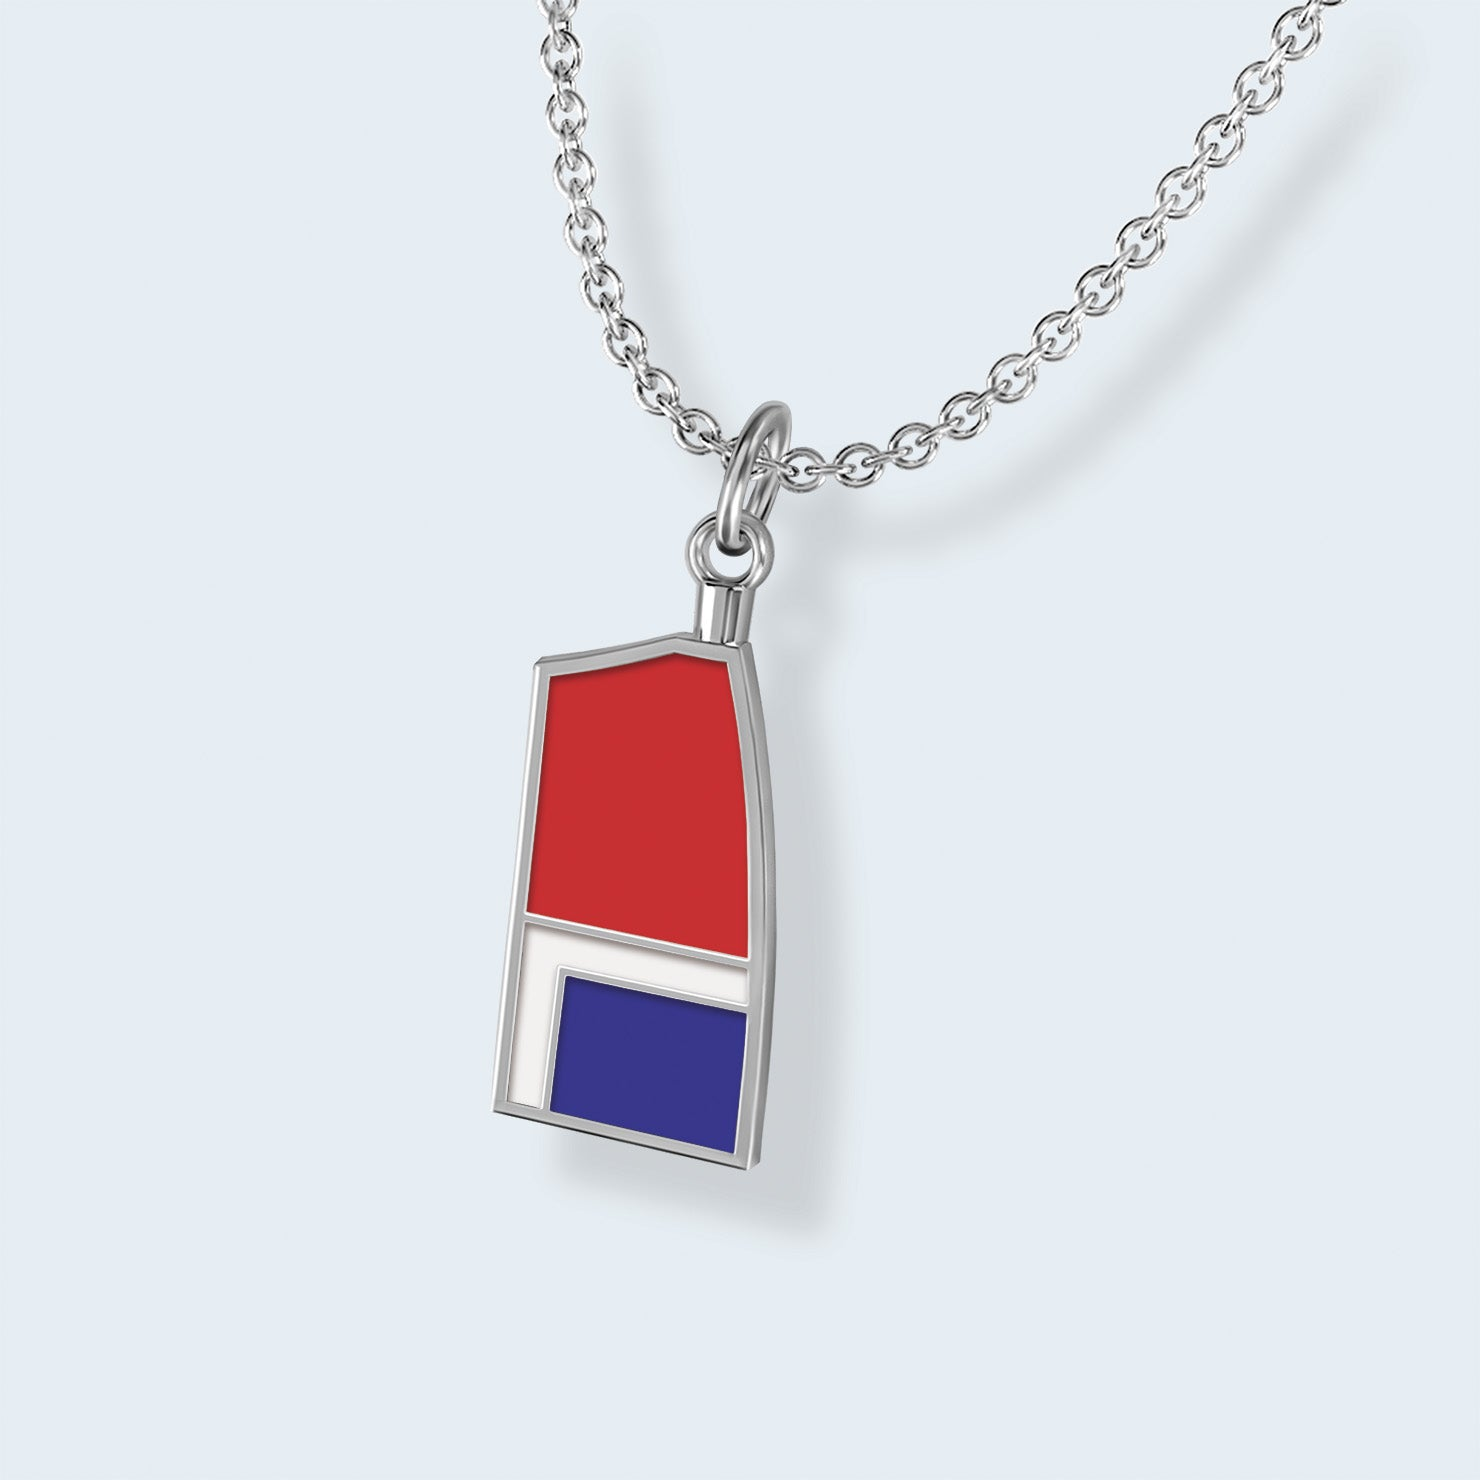 LLRC Pendant - Strokeside Designs Rowing jewelry- Rowing Gifts Ideas- Rowing Coach Gifts